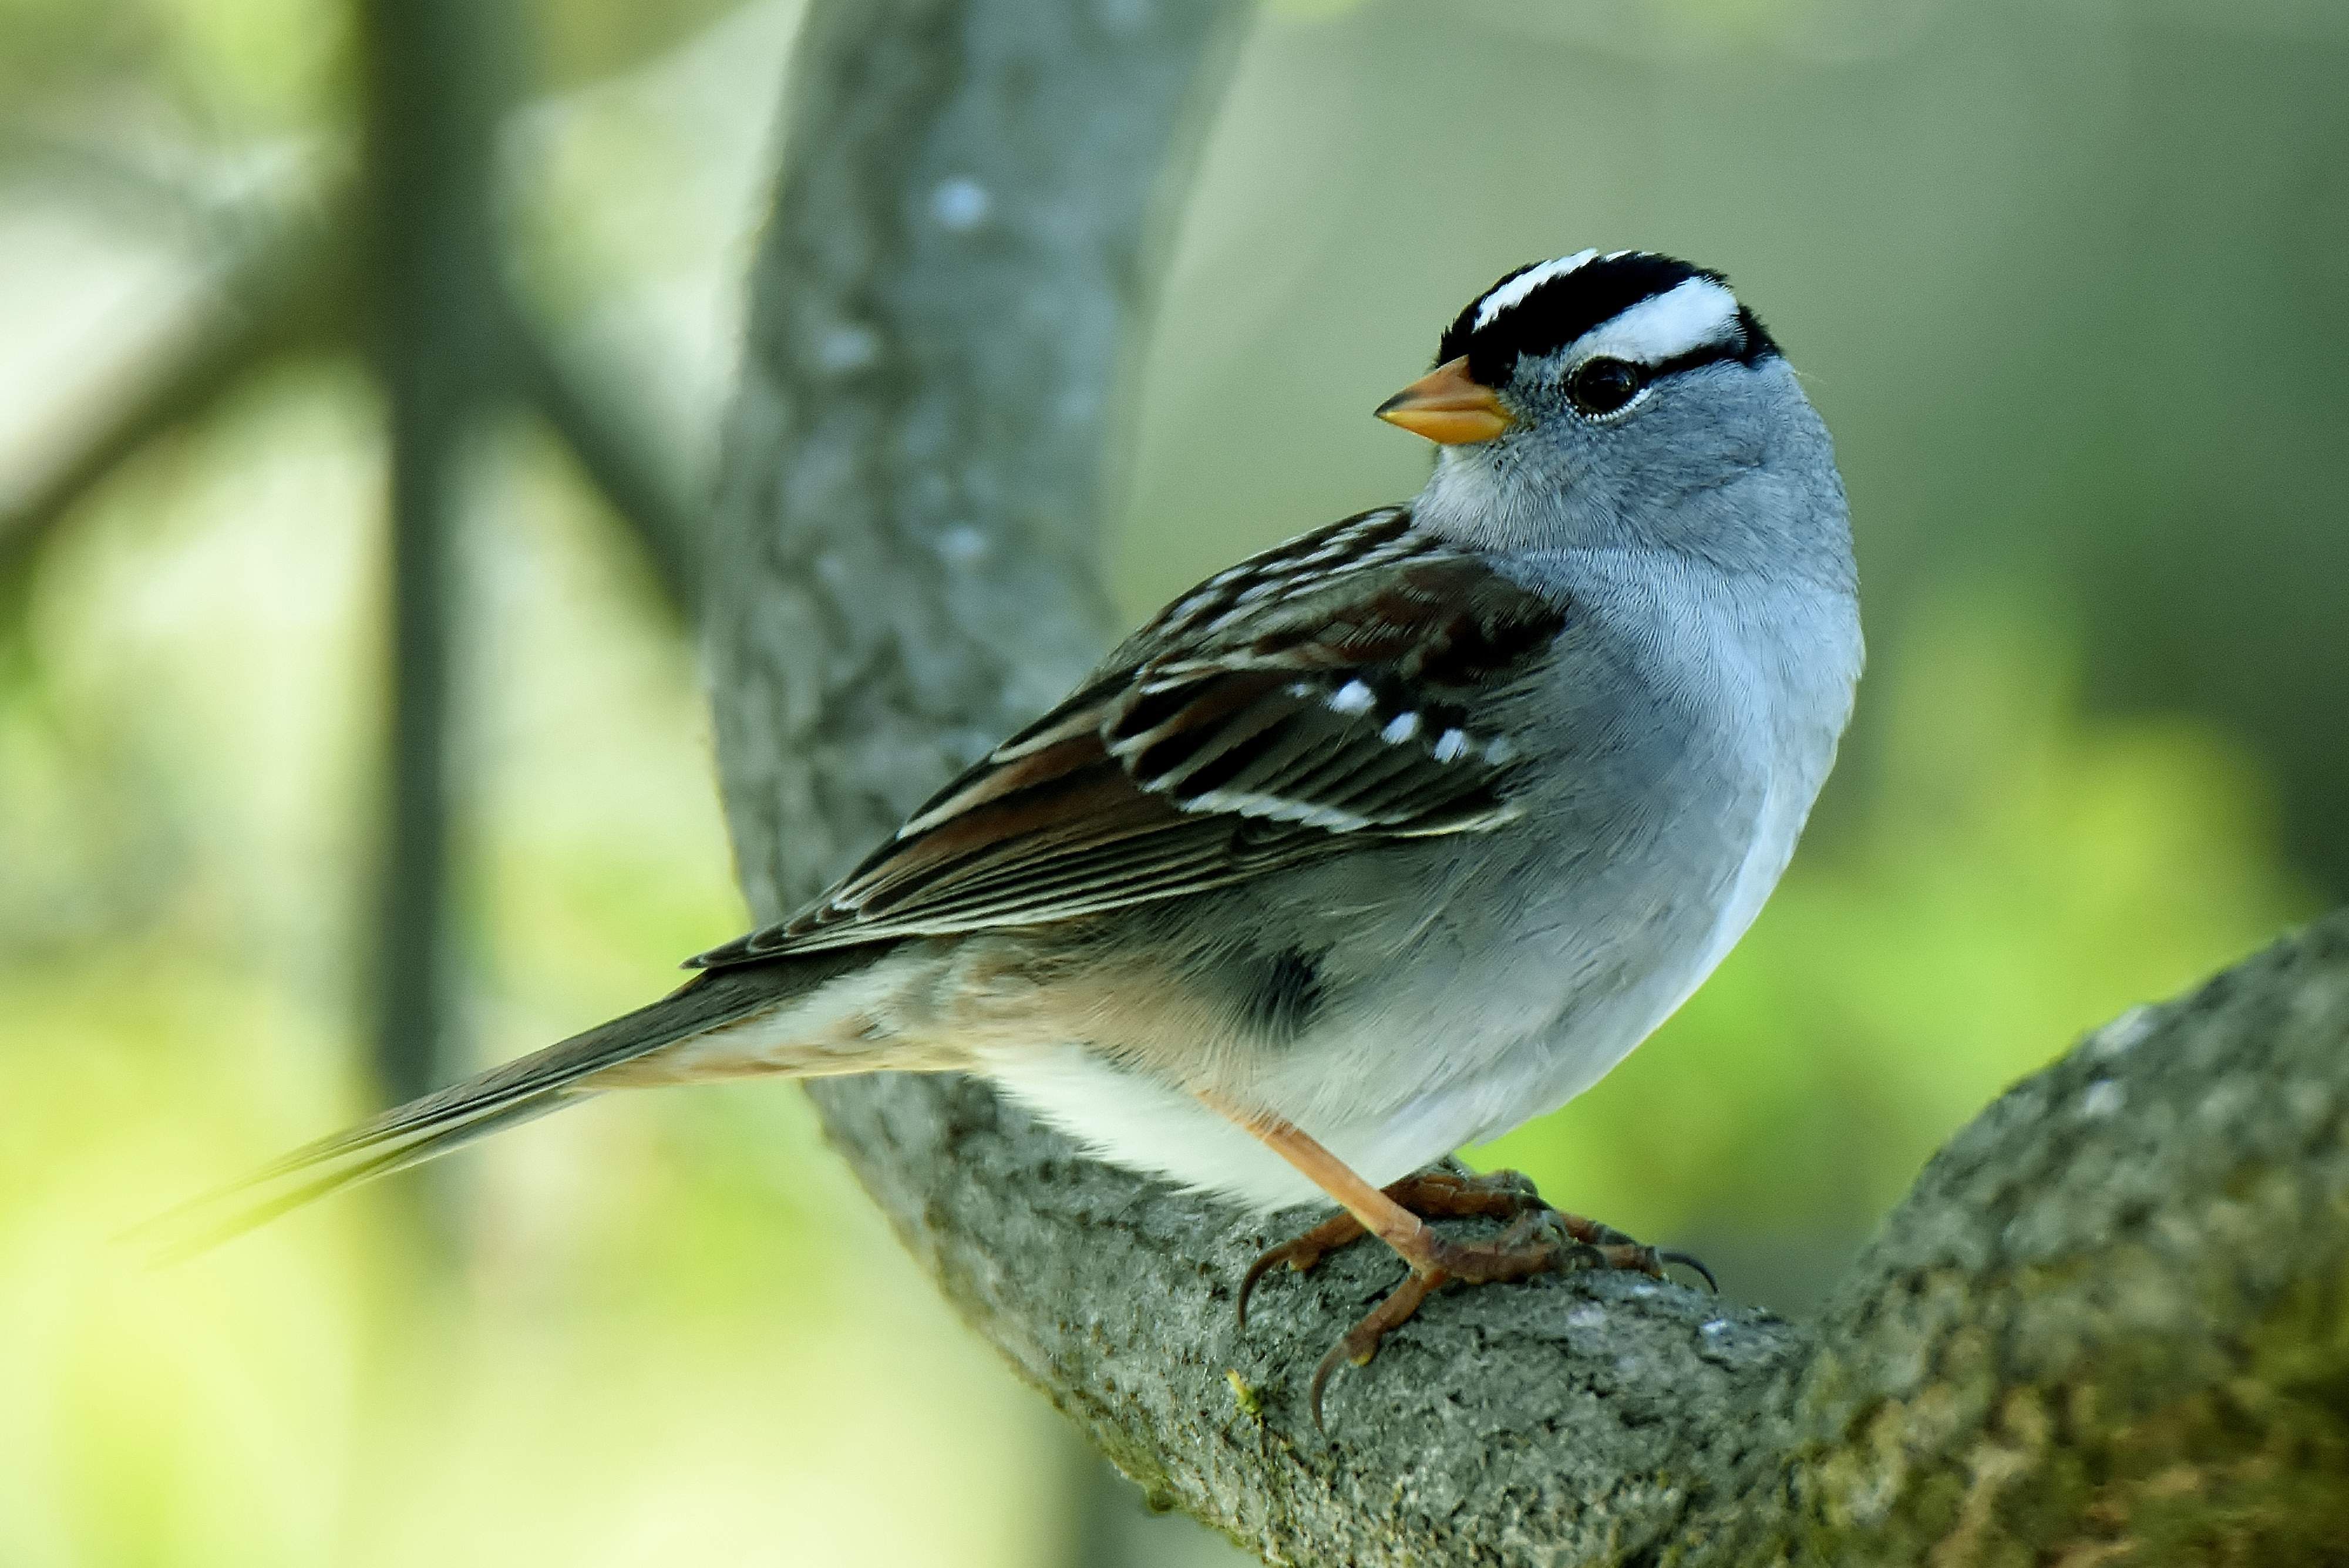 White-crested sparrow - Photo by Randy Young